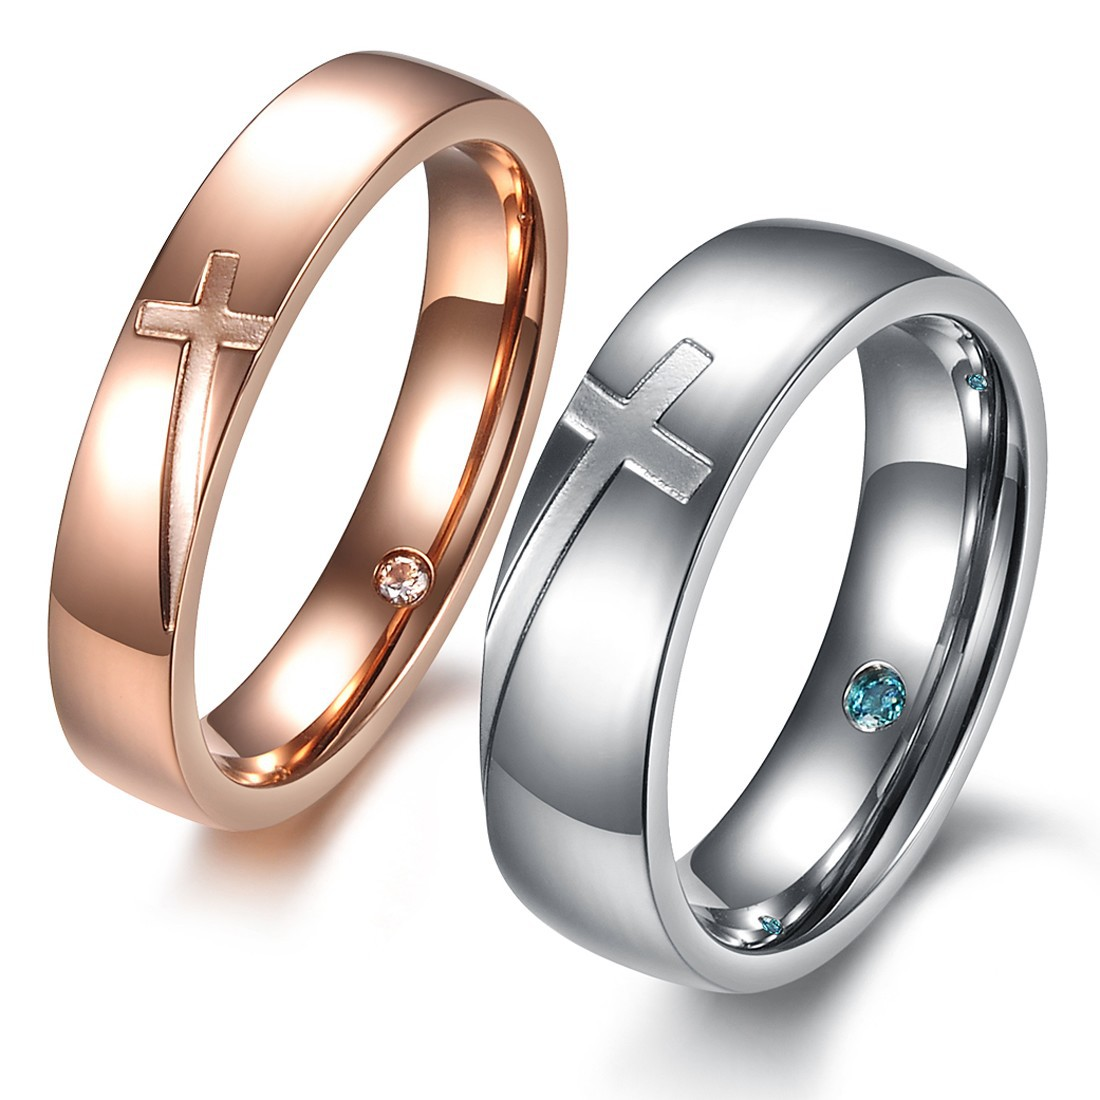 European and American fashion fashion ring cross puzzle ring ring ring with diamond inner ring and titanium steel couple tail ring accessories